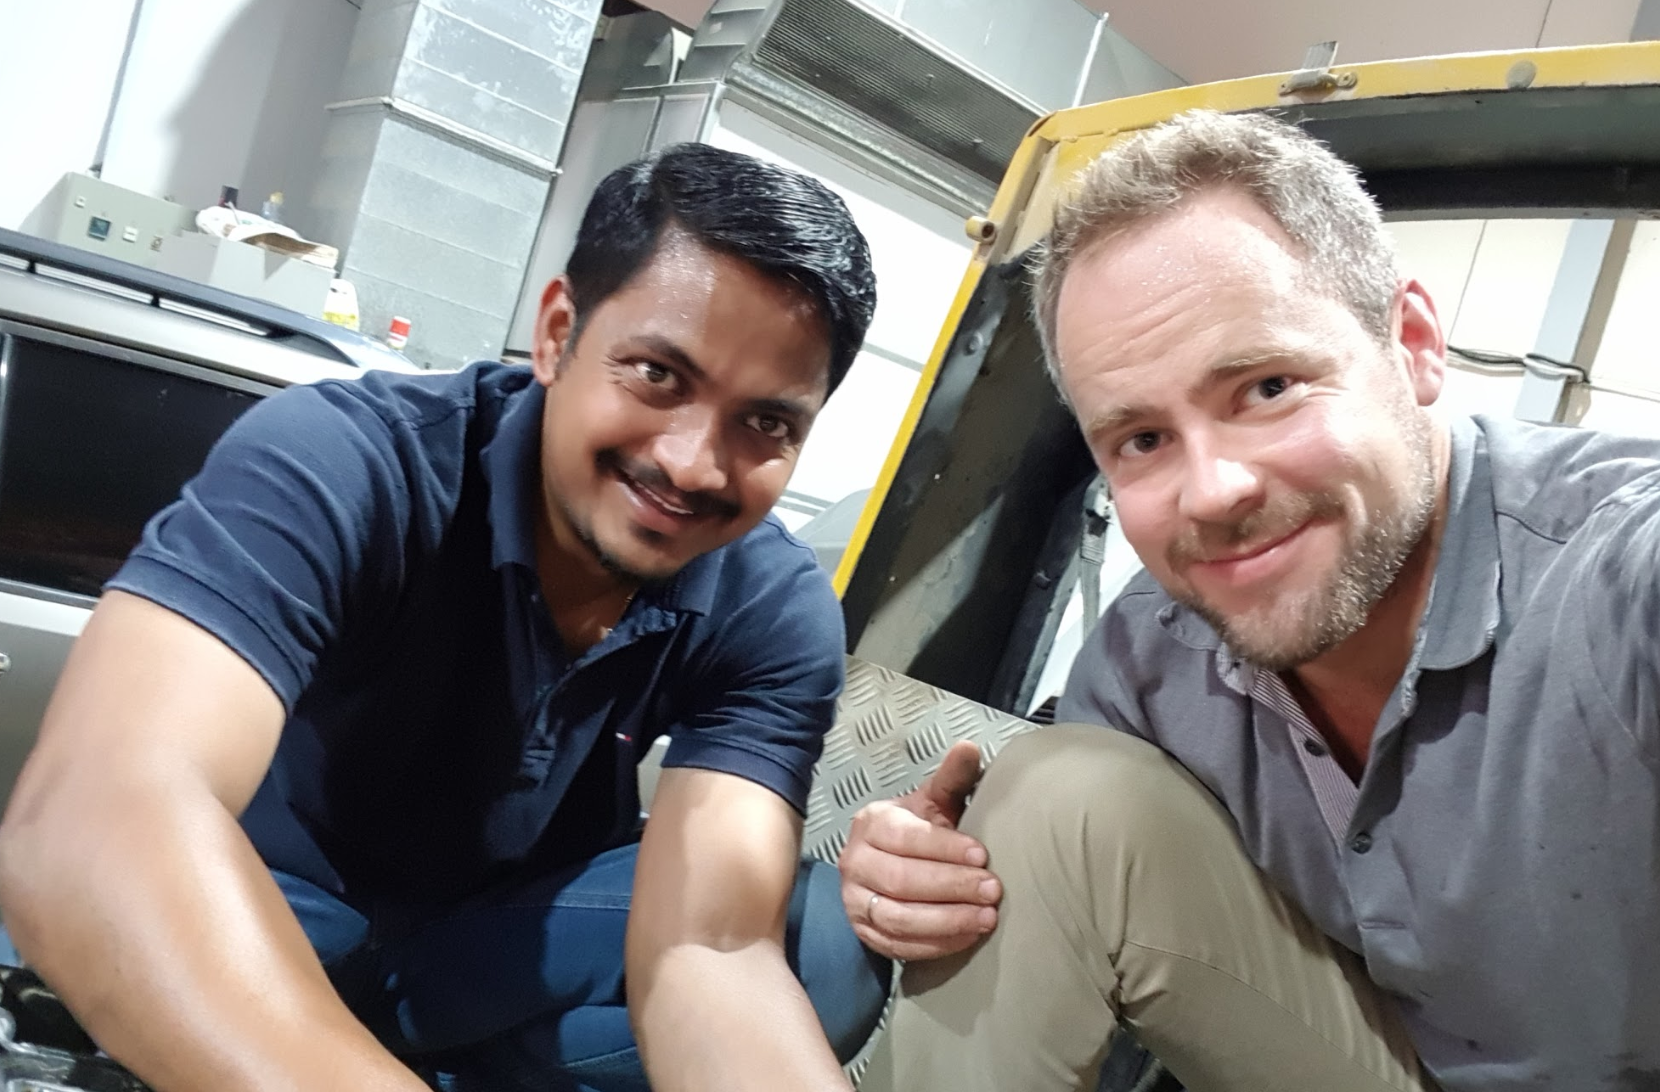 With help from the amazing team at the garage, we managed to get these important first steps of the project off to a good start. A big thank you to Peter and the whole team at Butterfly Cars Care, Abu Dhabi!